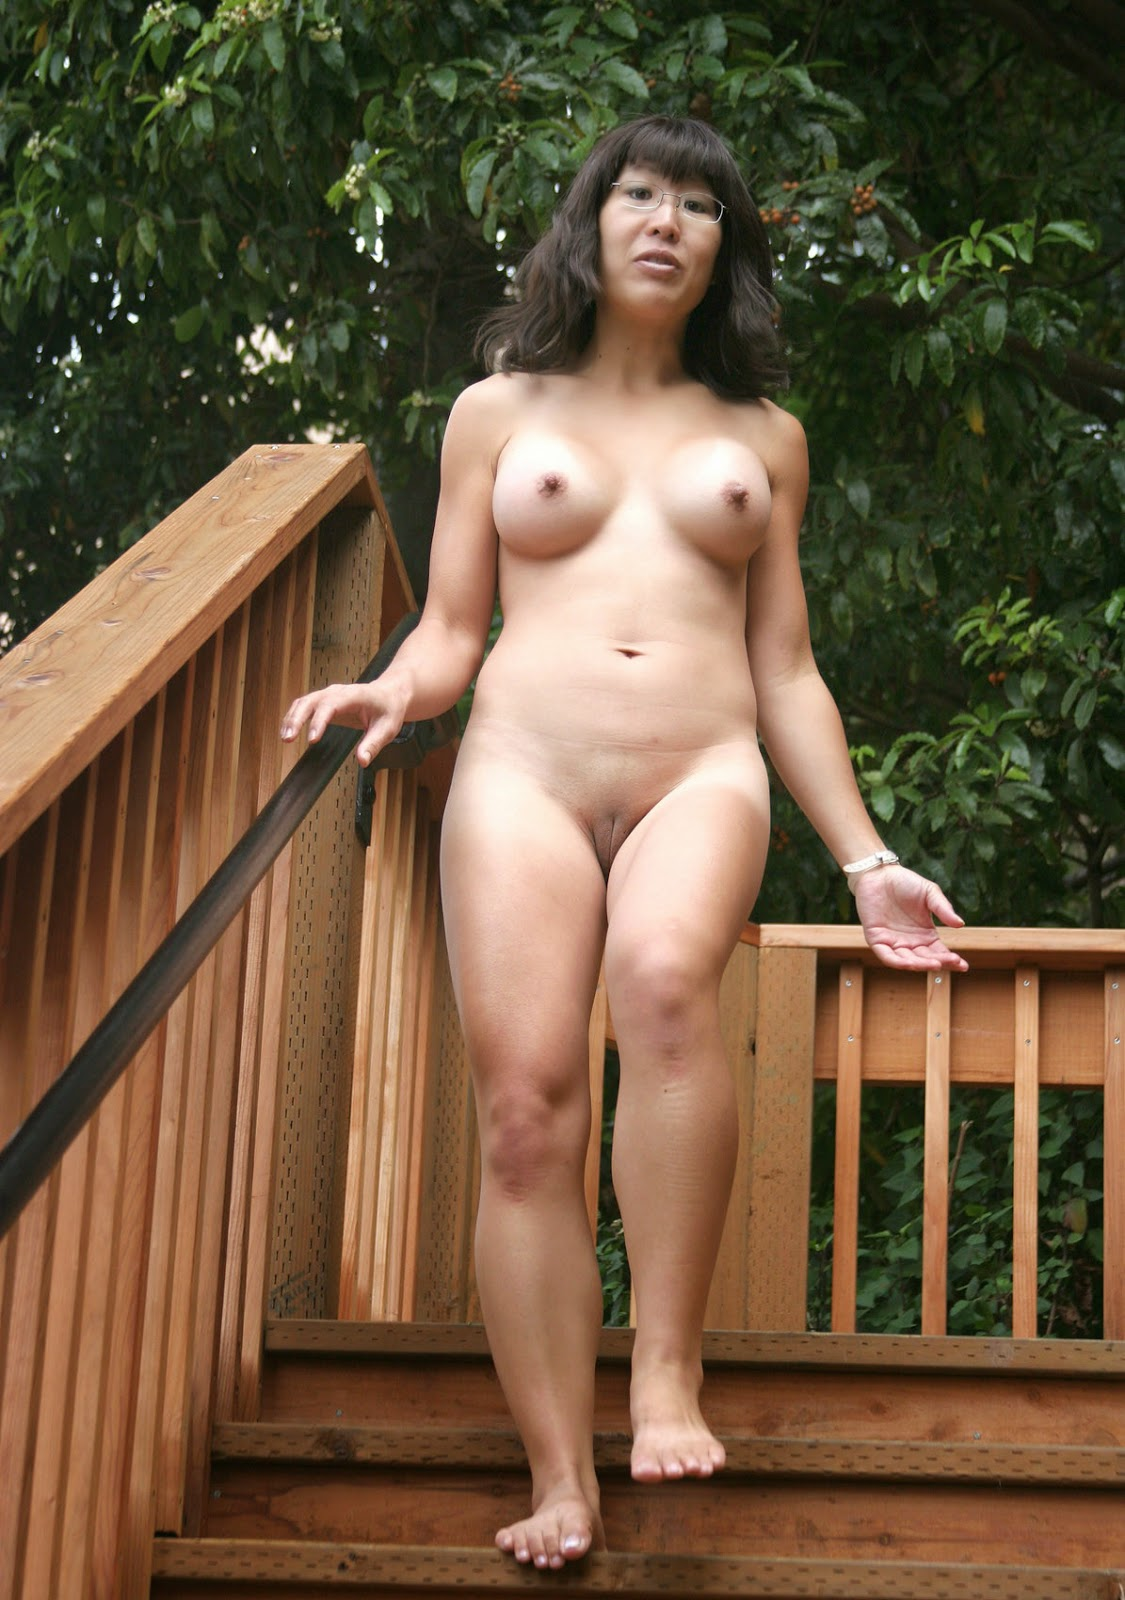 Nude asian women in public